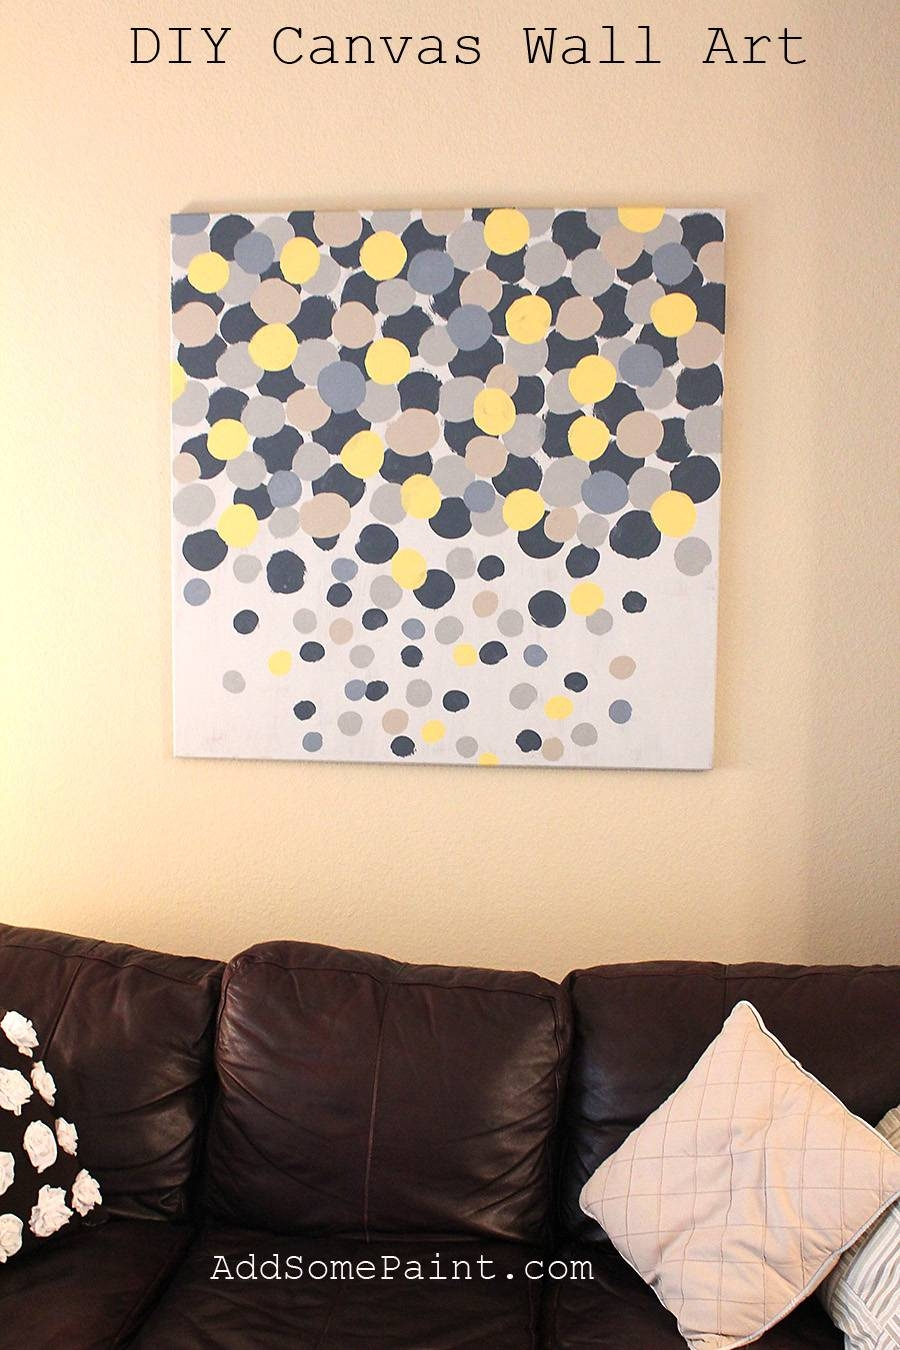 Diy Art Canvas Designs Simplecanvaspaintingideas Ideas Easy Canvas  Throughout Recent Diy Pinterest Canvas Art (View